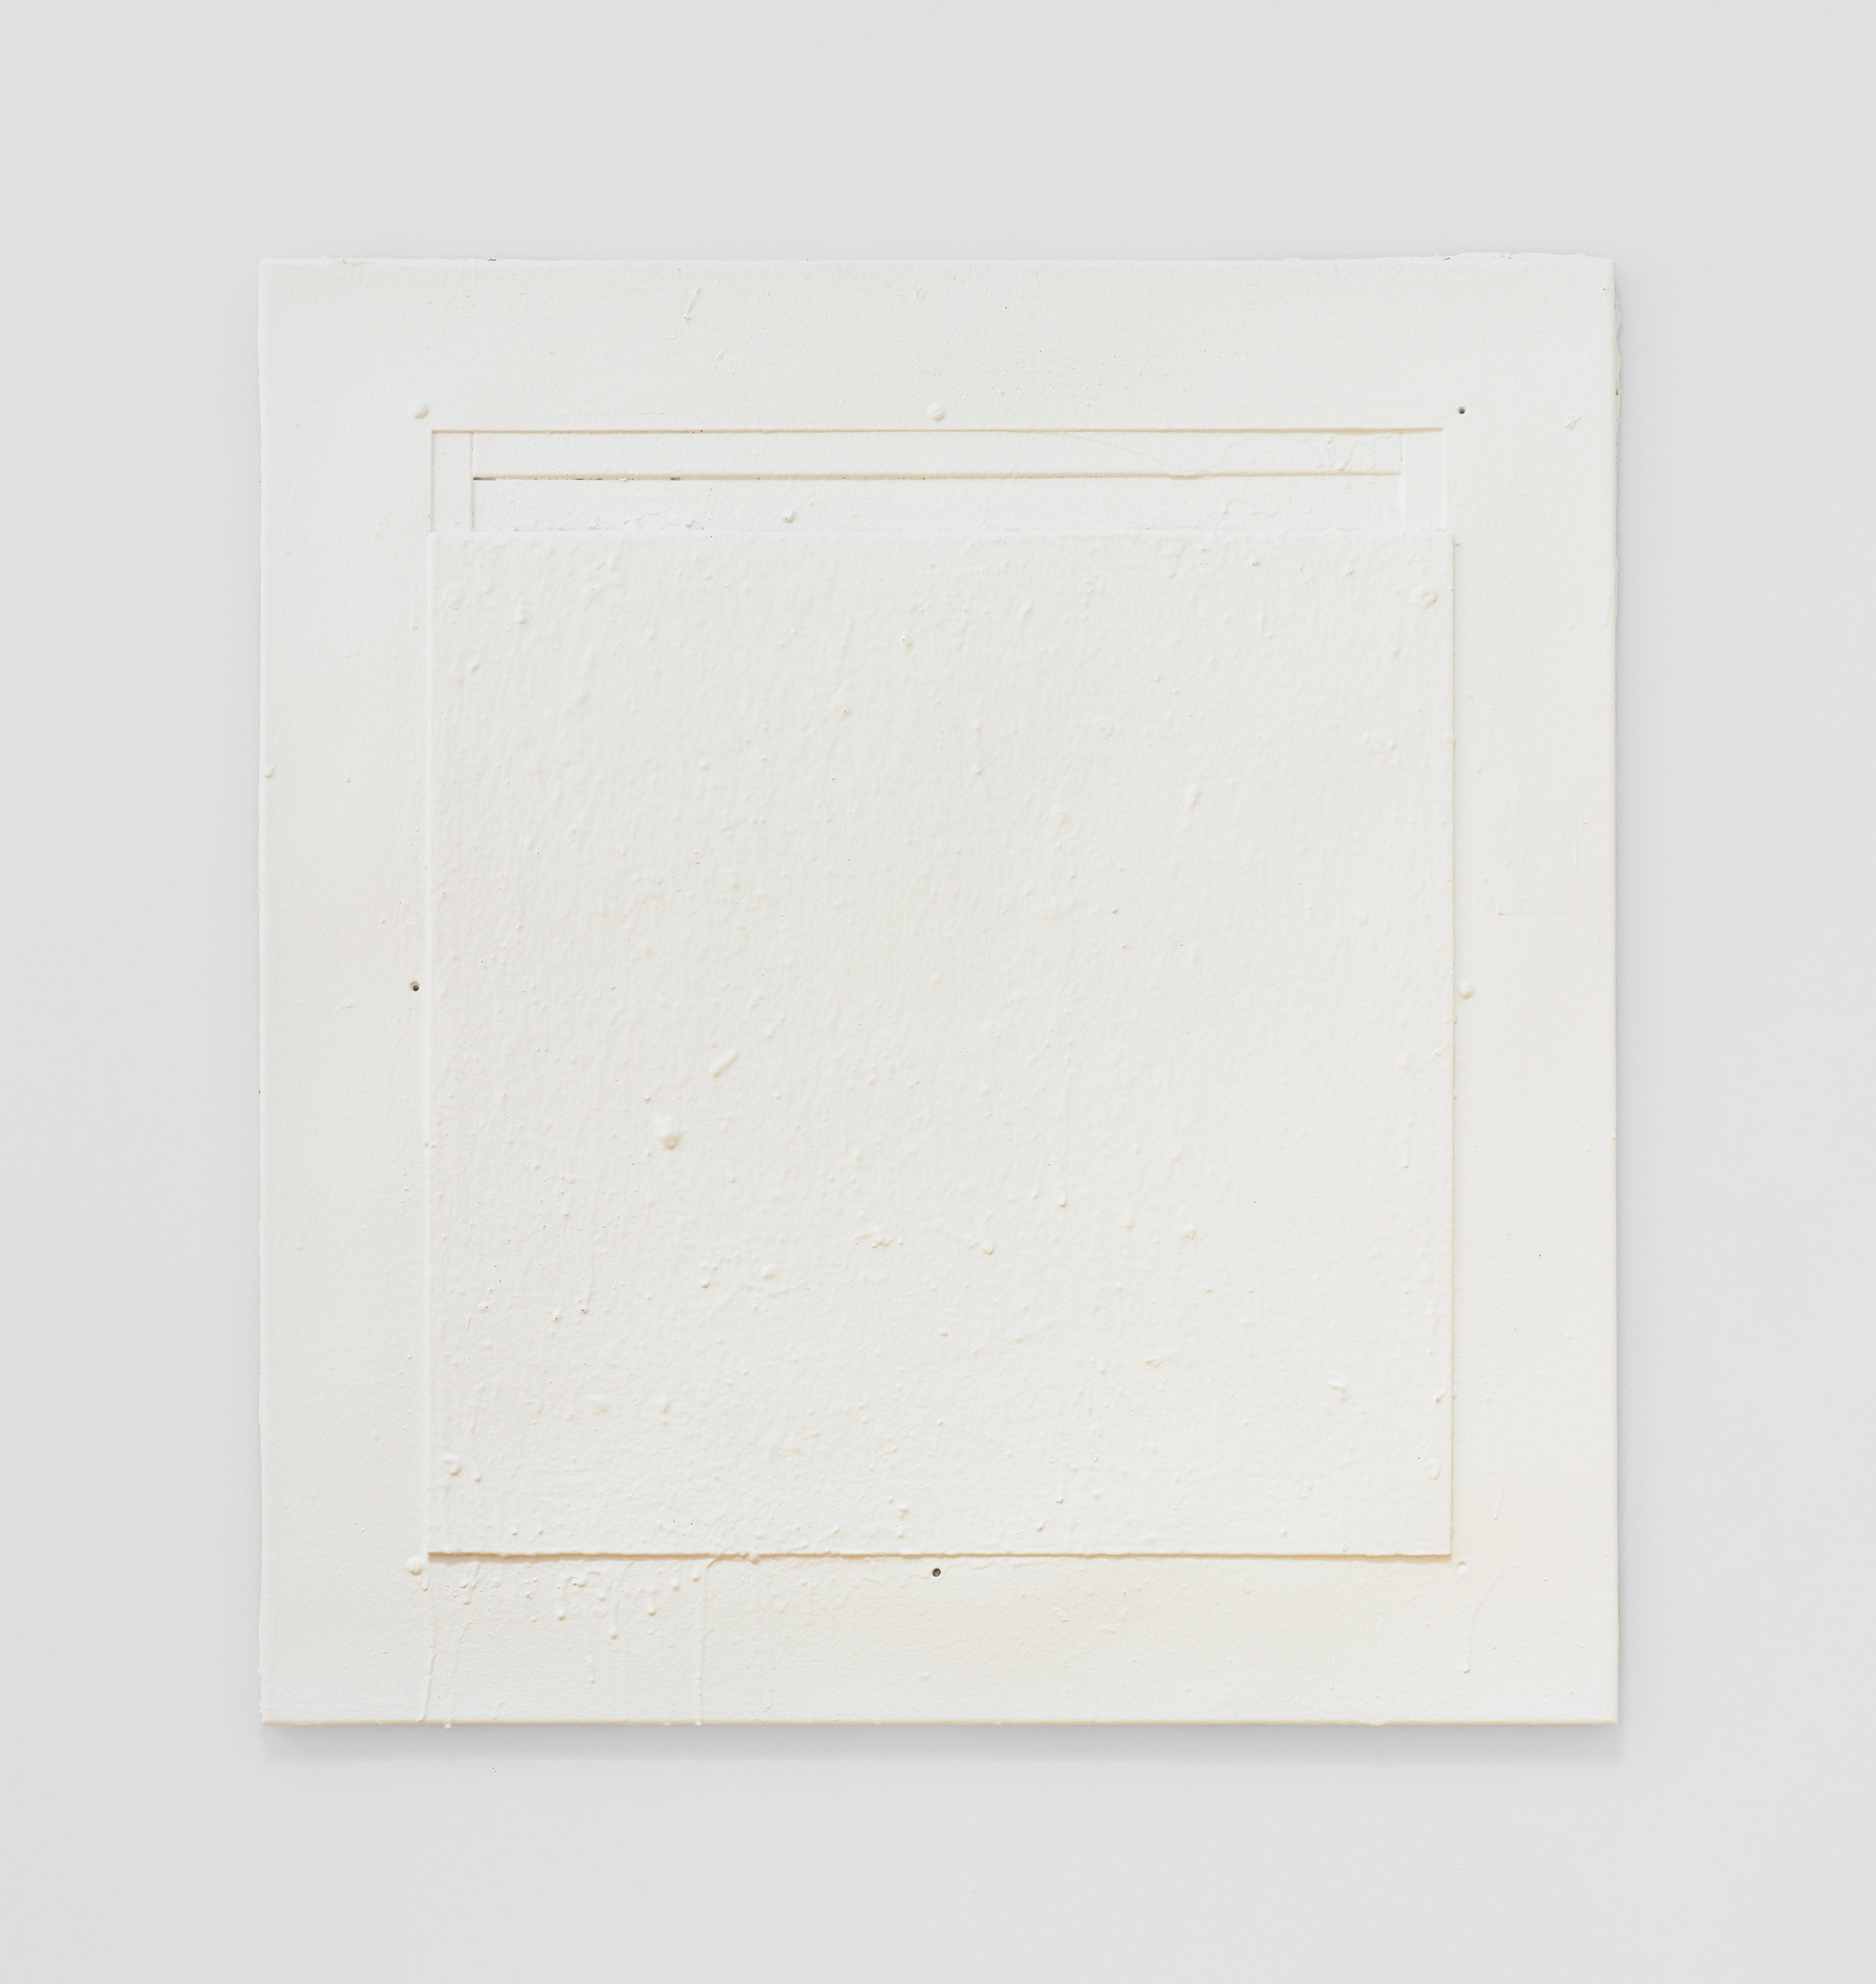 Fiona Connor, Untitled #13 (4344 Eagle Rock Blvd, Los Angeles, CA 90041), 2018. Cast resin, white acrylic paint.